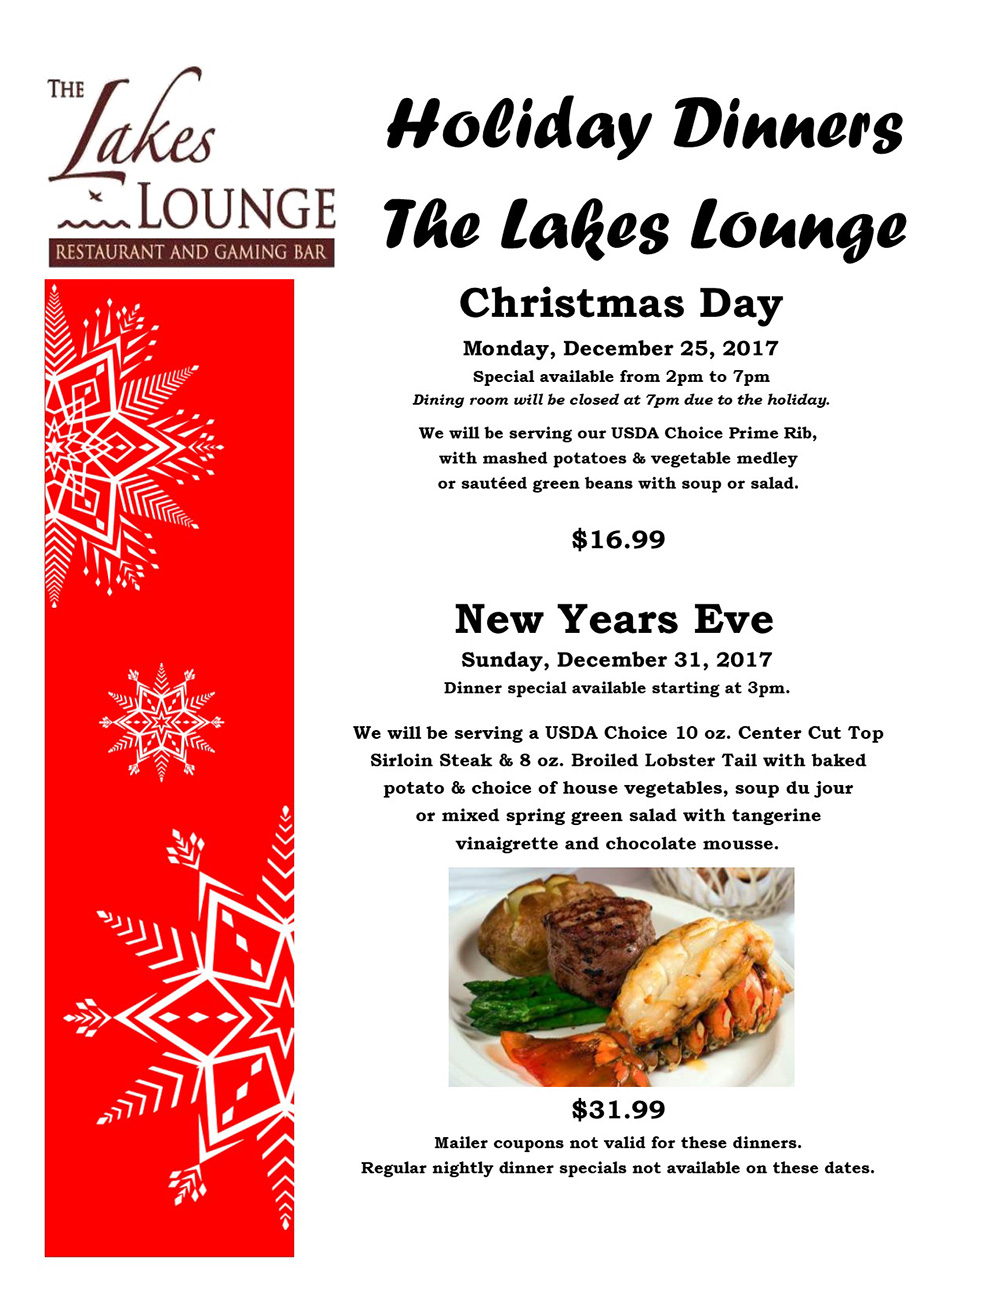 2017 Holiday Dinners • The Lakes Lounge Restaurant And Gaming Bar